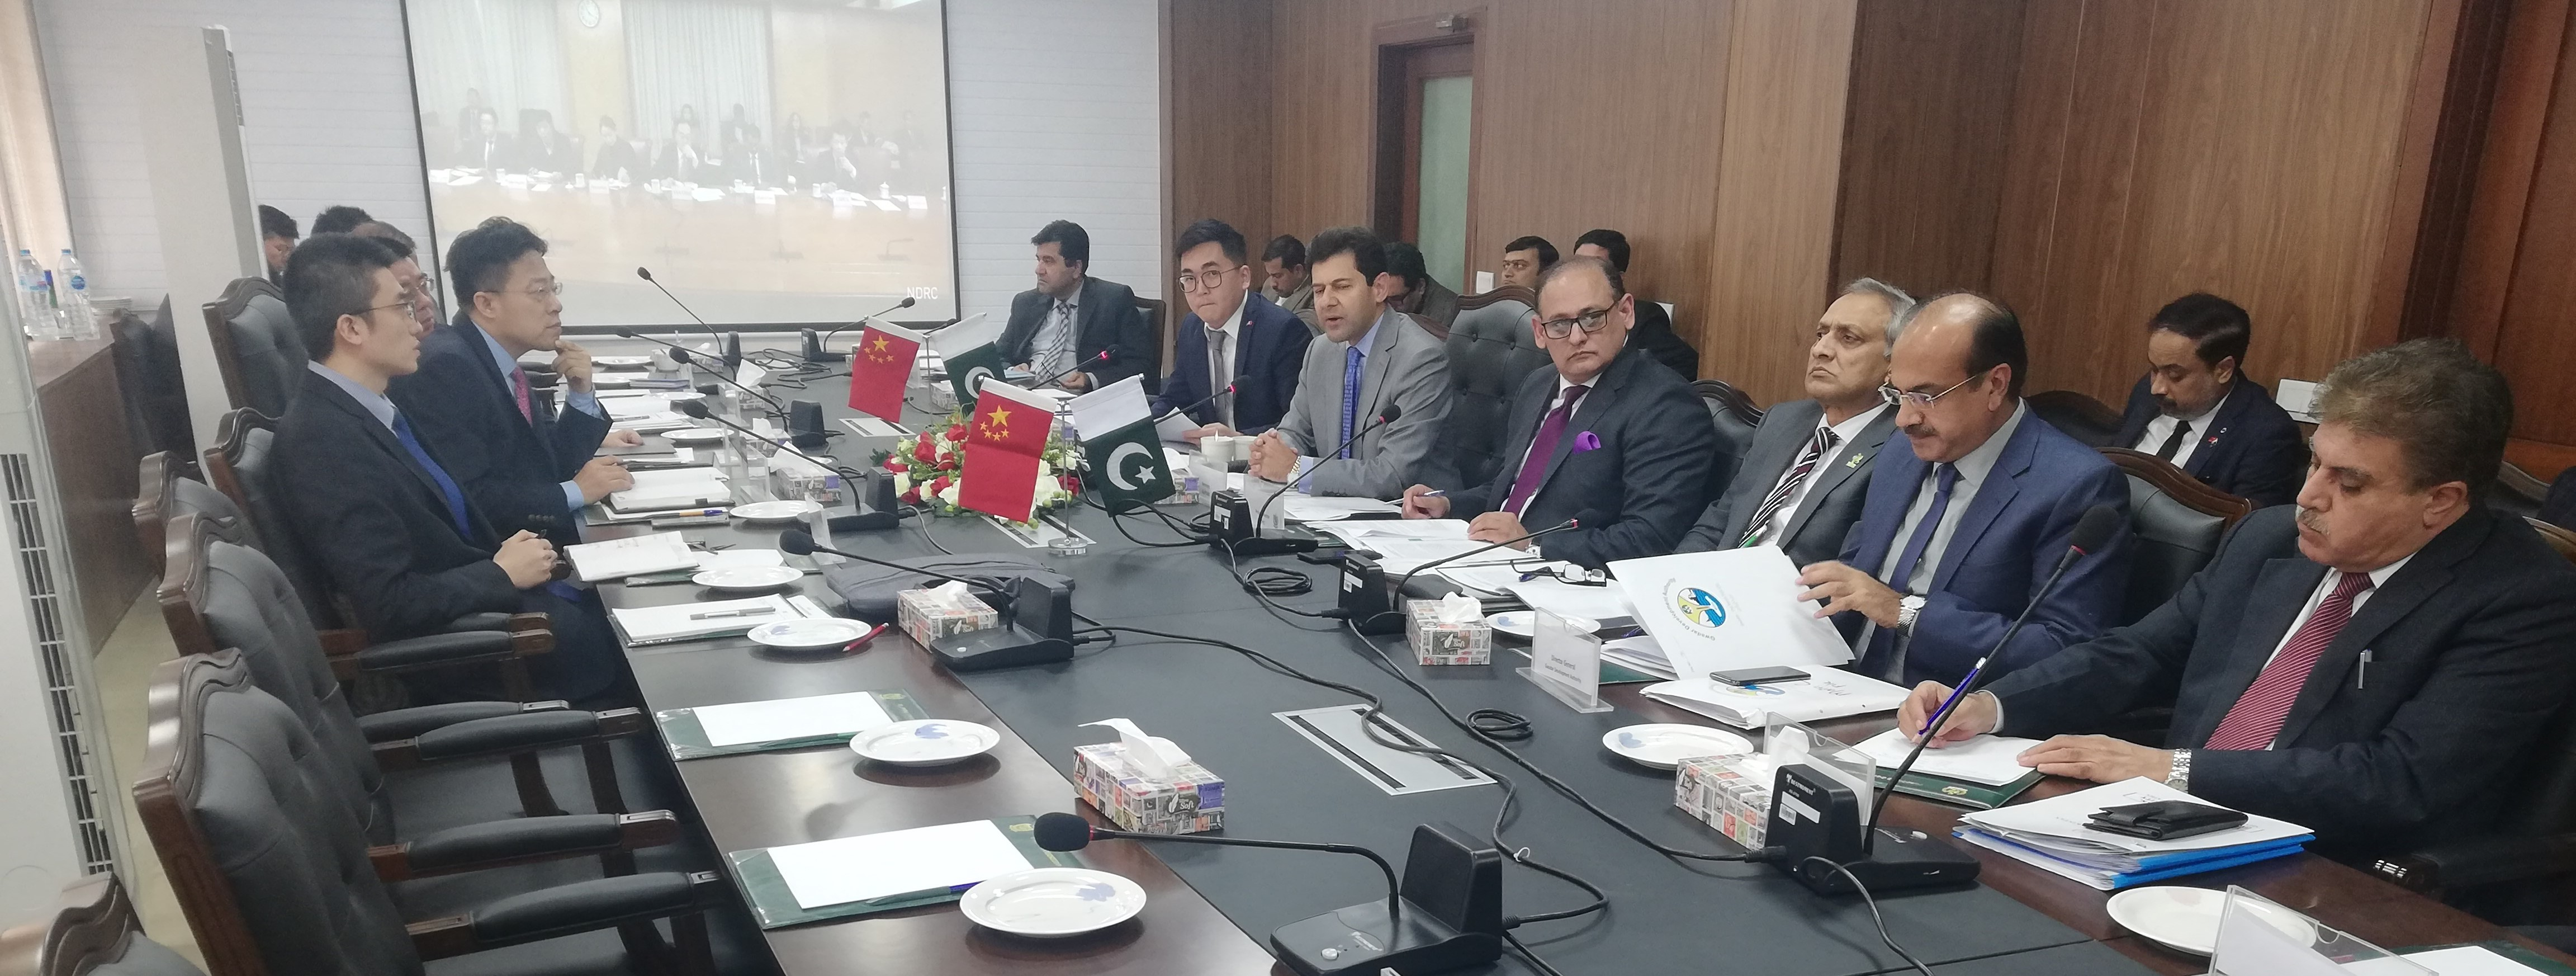 Meeting of Joint Working Group(JWG) of Planning  held on 15 November 2018